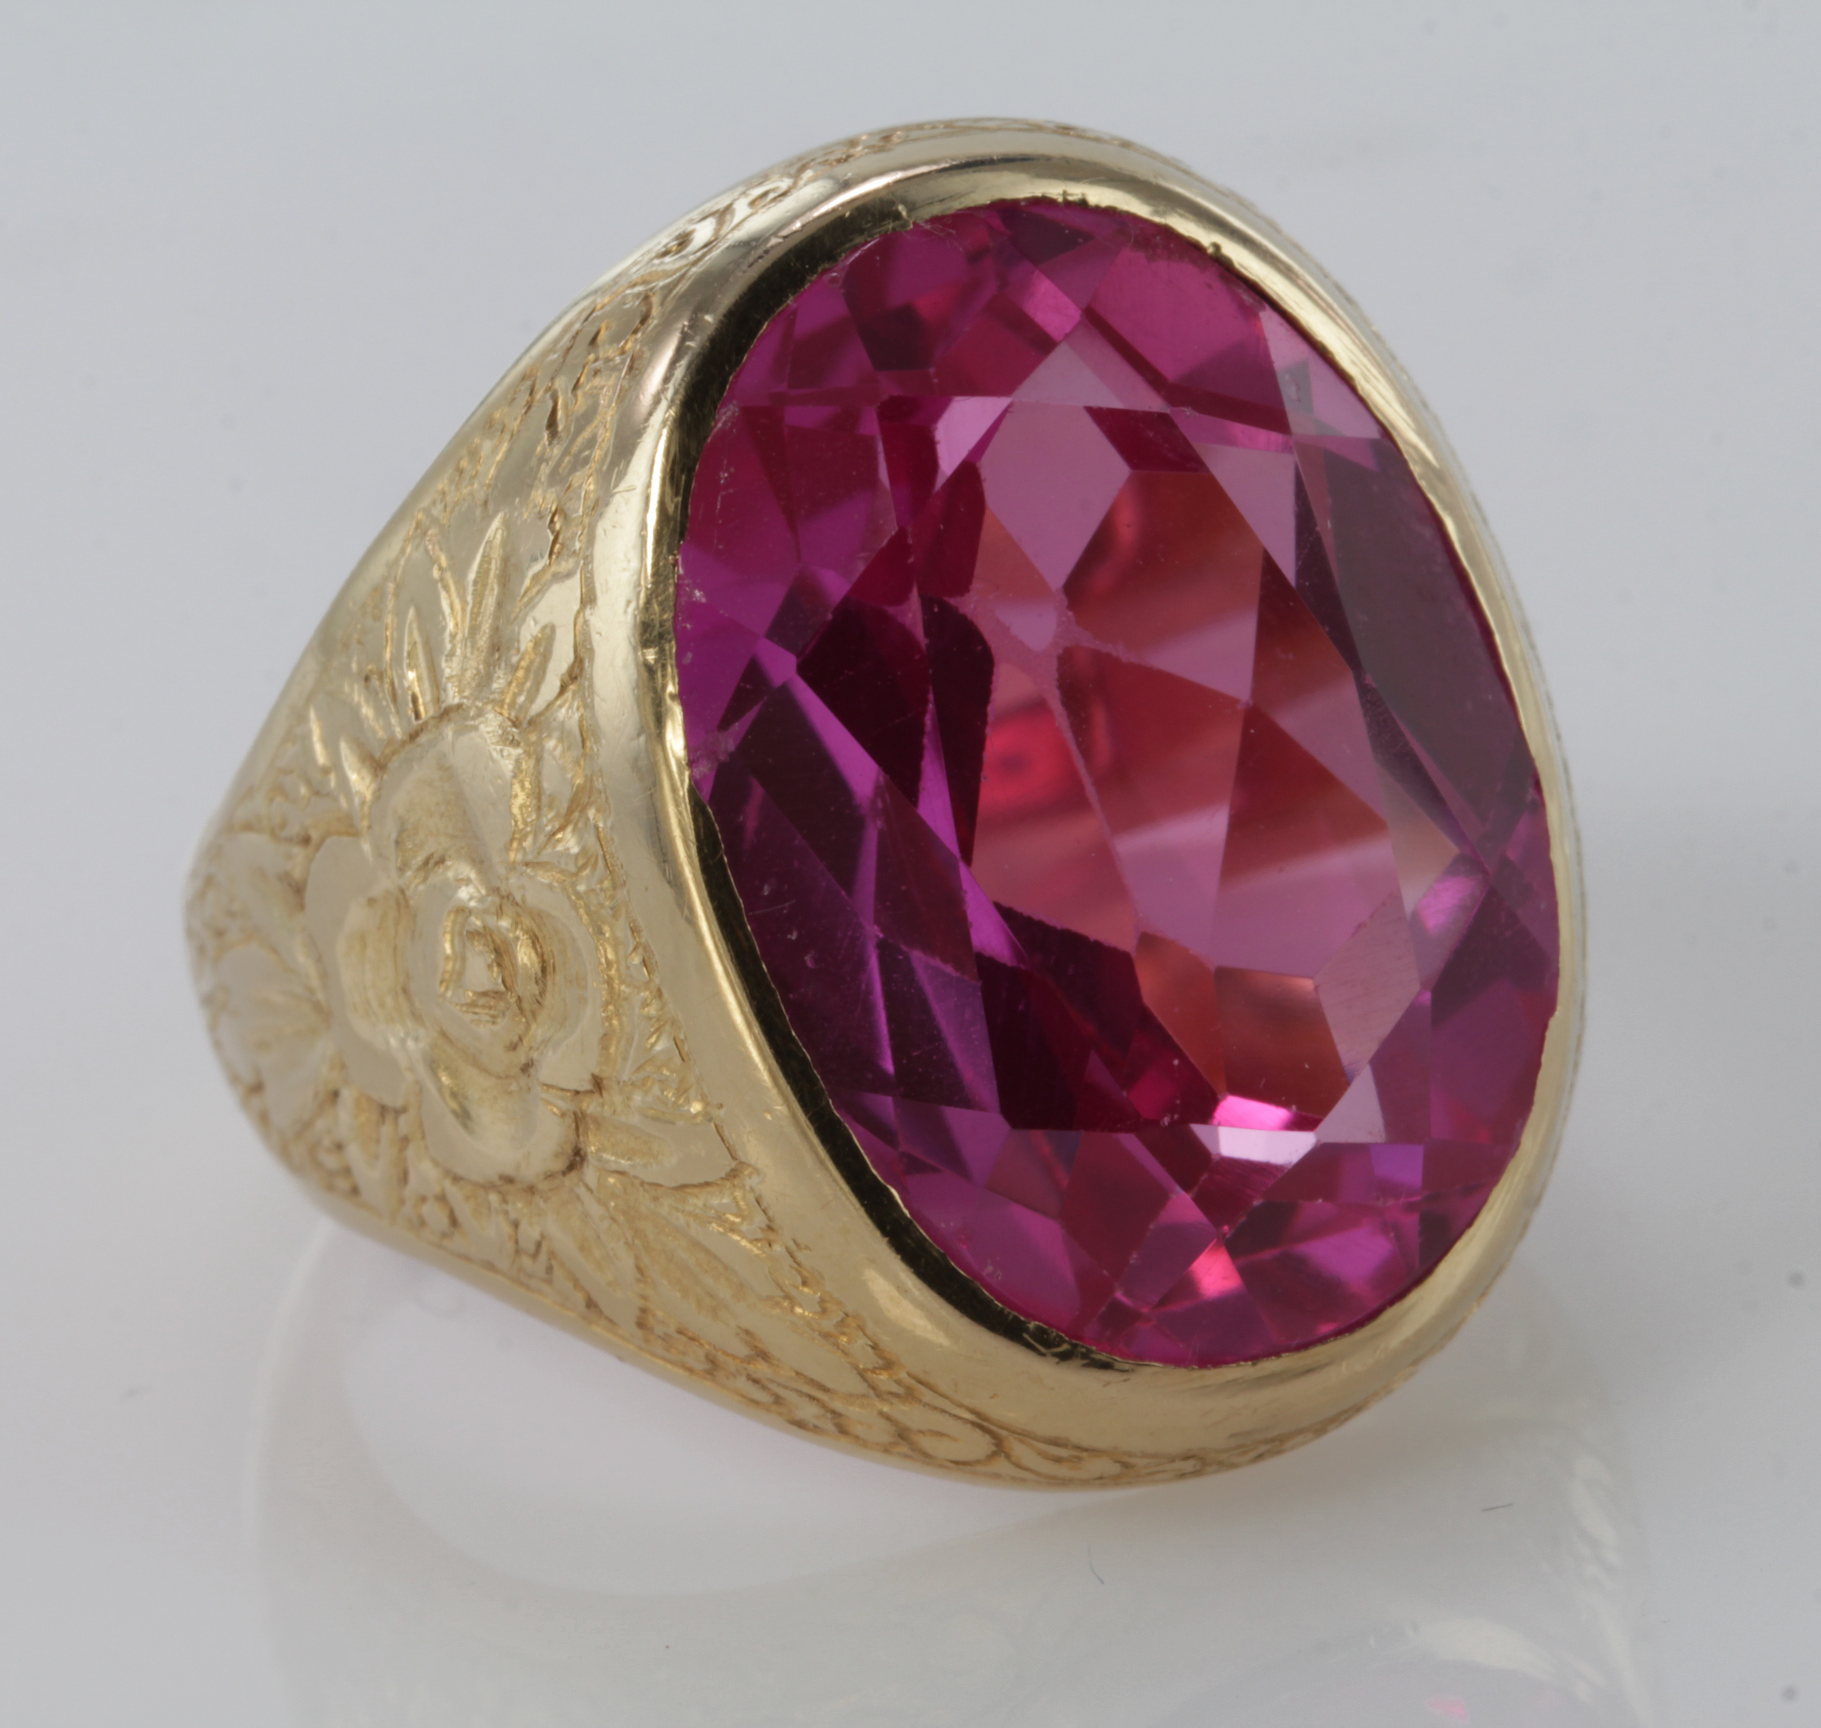 Lot 47 - 18ct Gold Ring with large Pink synthetic stone size R weight 22.3g